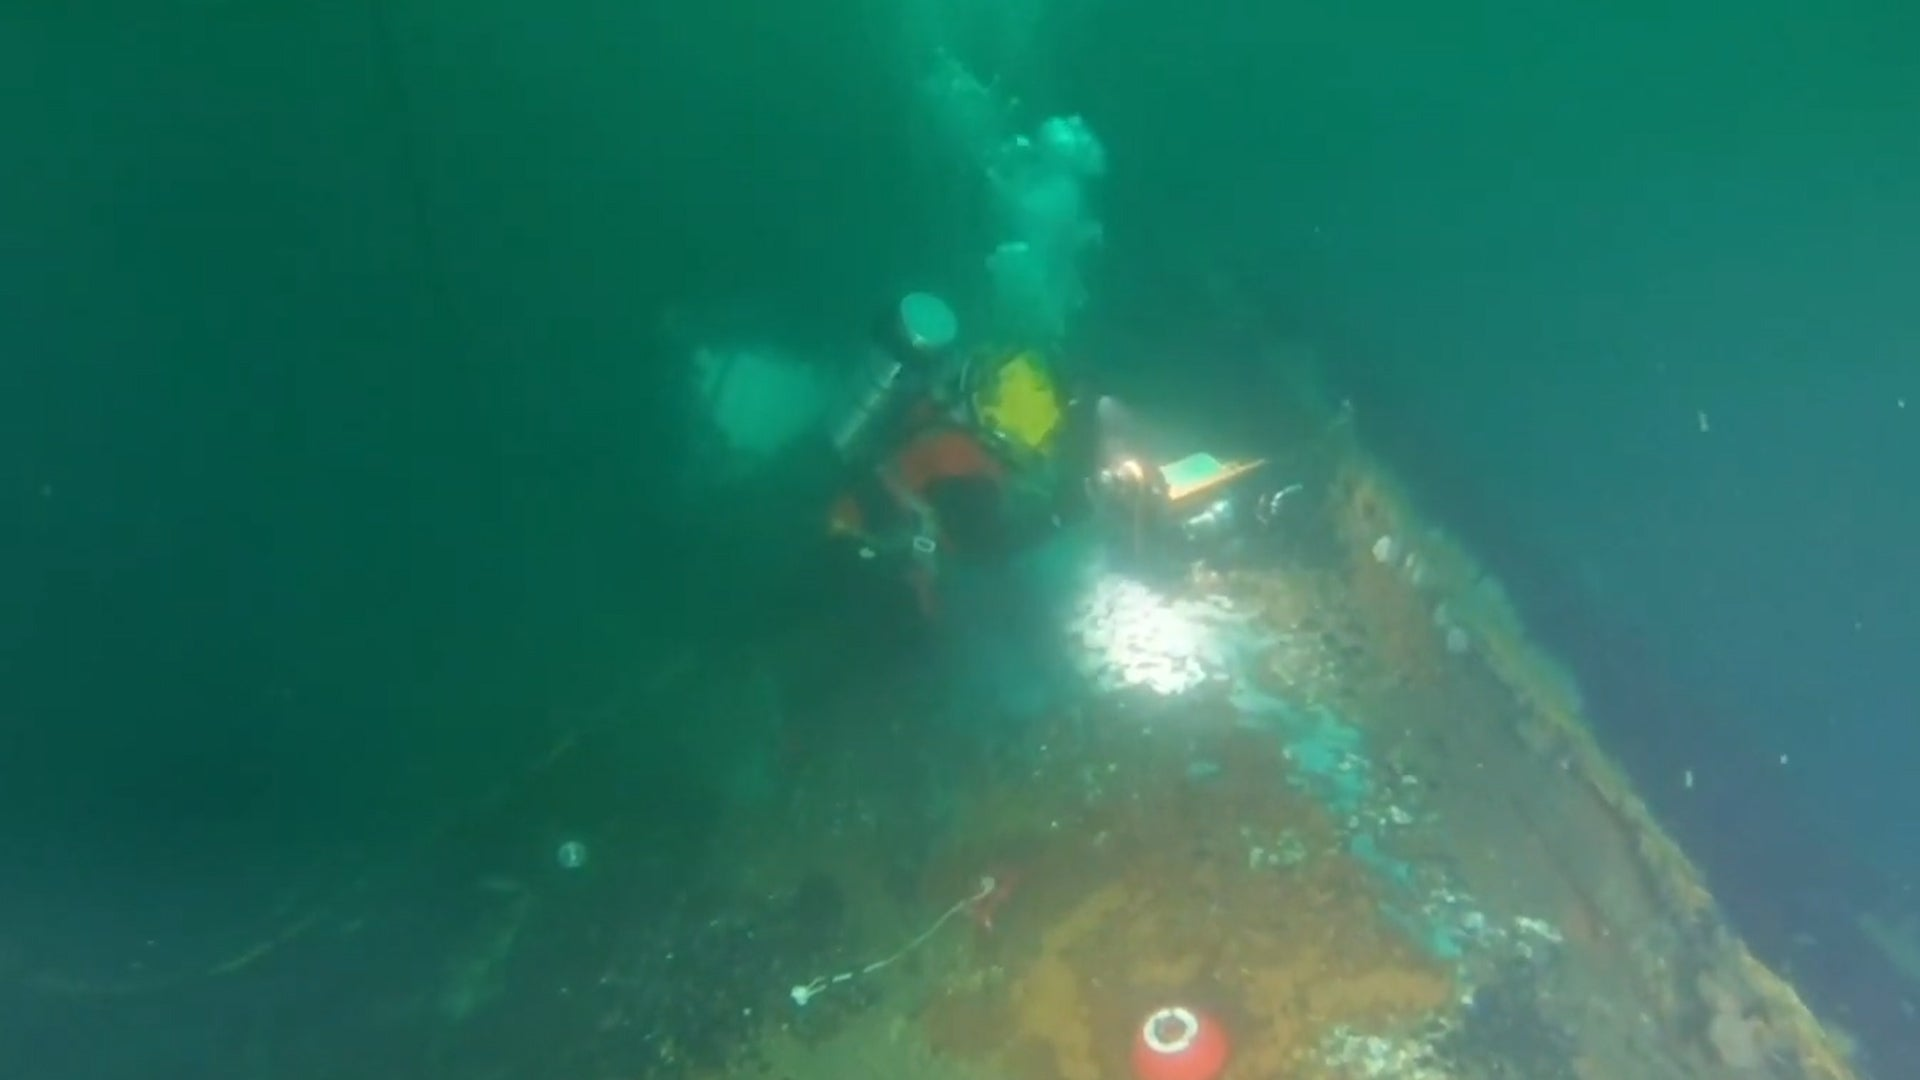 Divers Extract Oil Recovered from WWII Shipwreck Off NY Coast